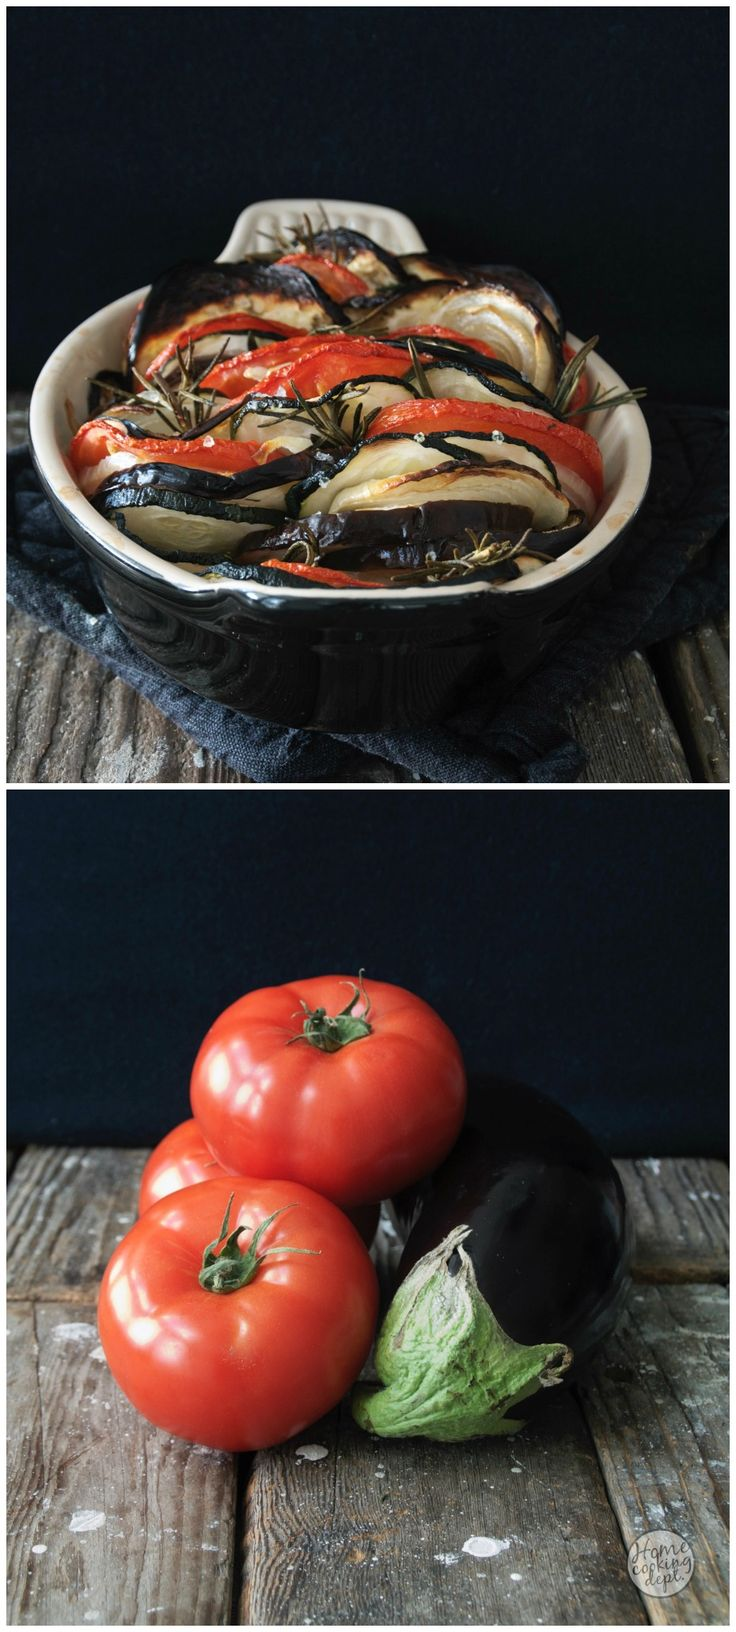 Classic French Food Recipe! Provençal Tian with zucchini and eggplant - Groenten tian provencal / Homecooking dept.